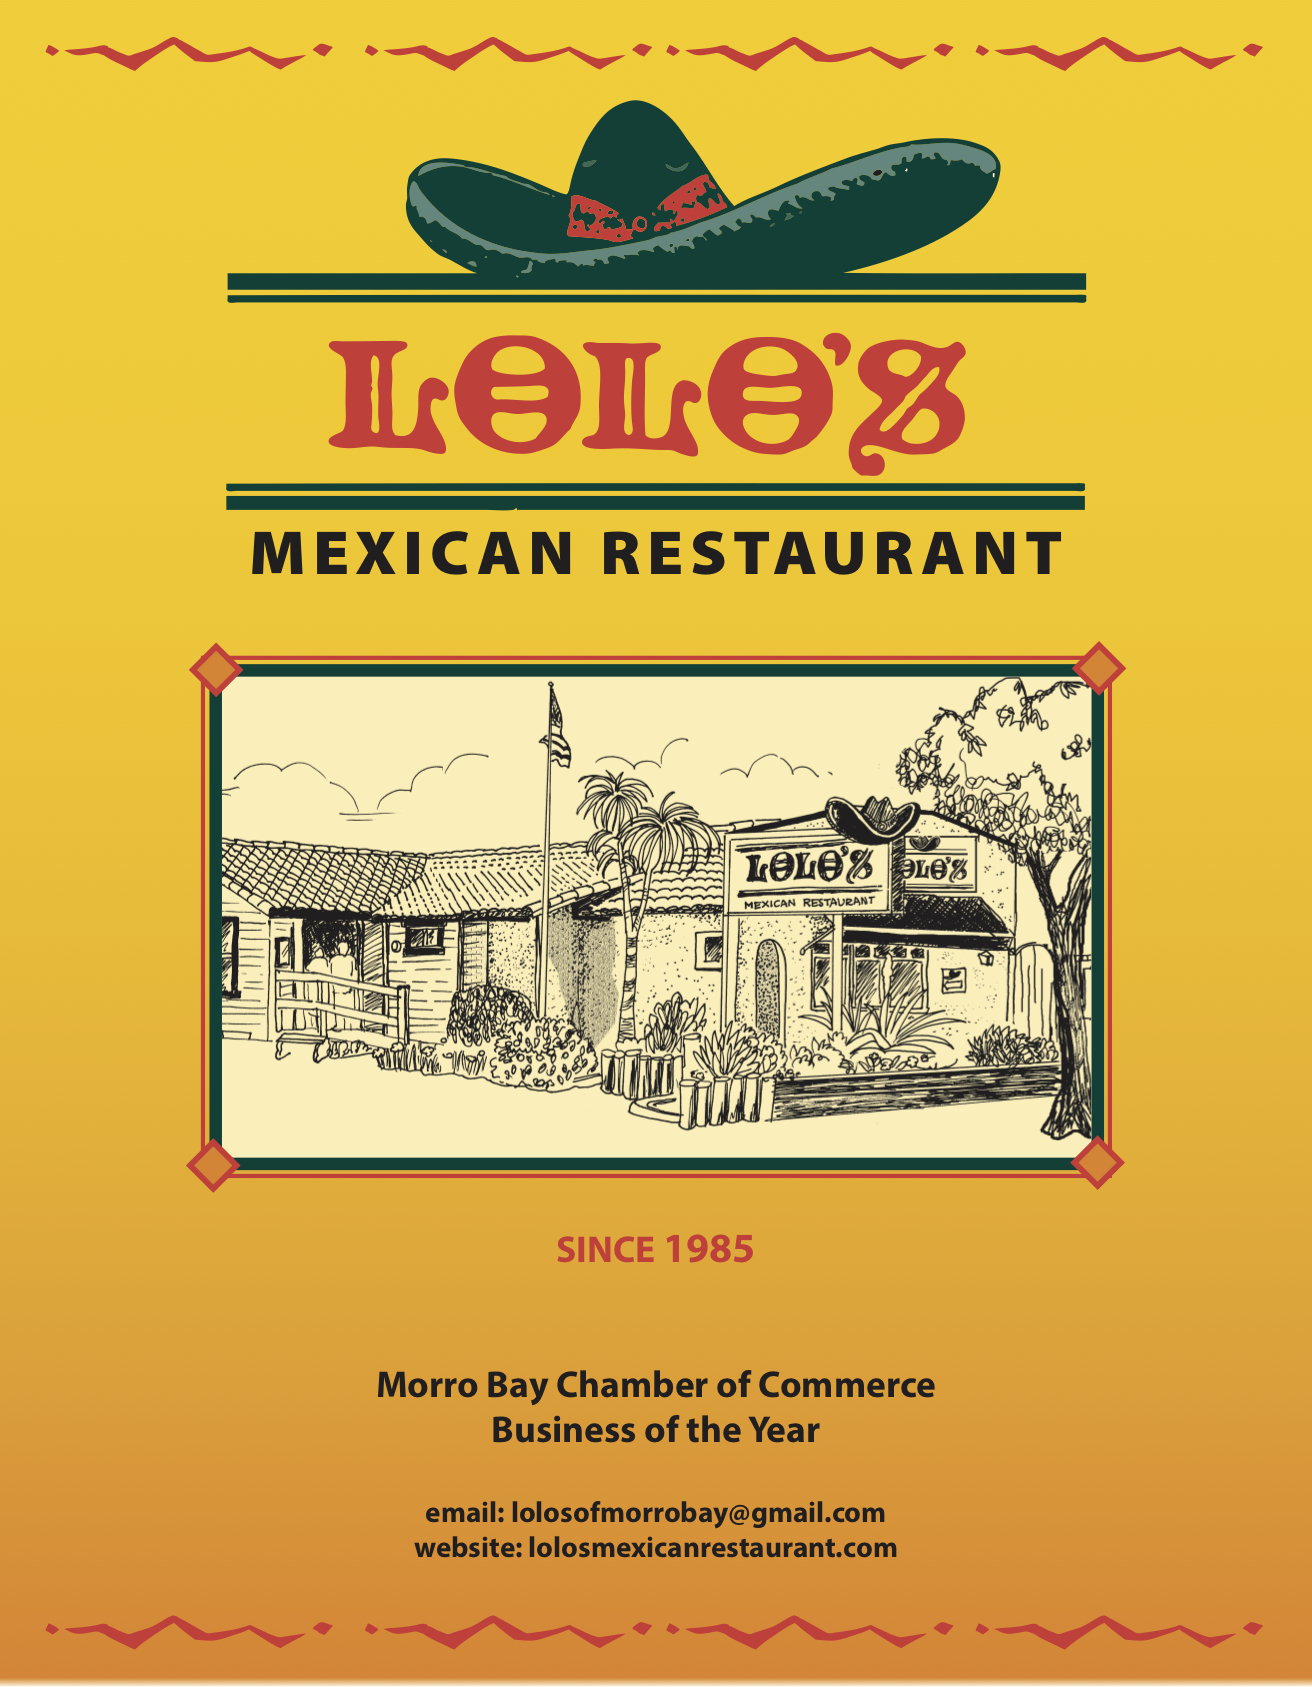 Lolos mexican restaurant Lunch and Dinner Menu